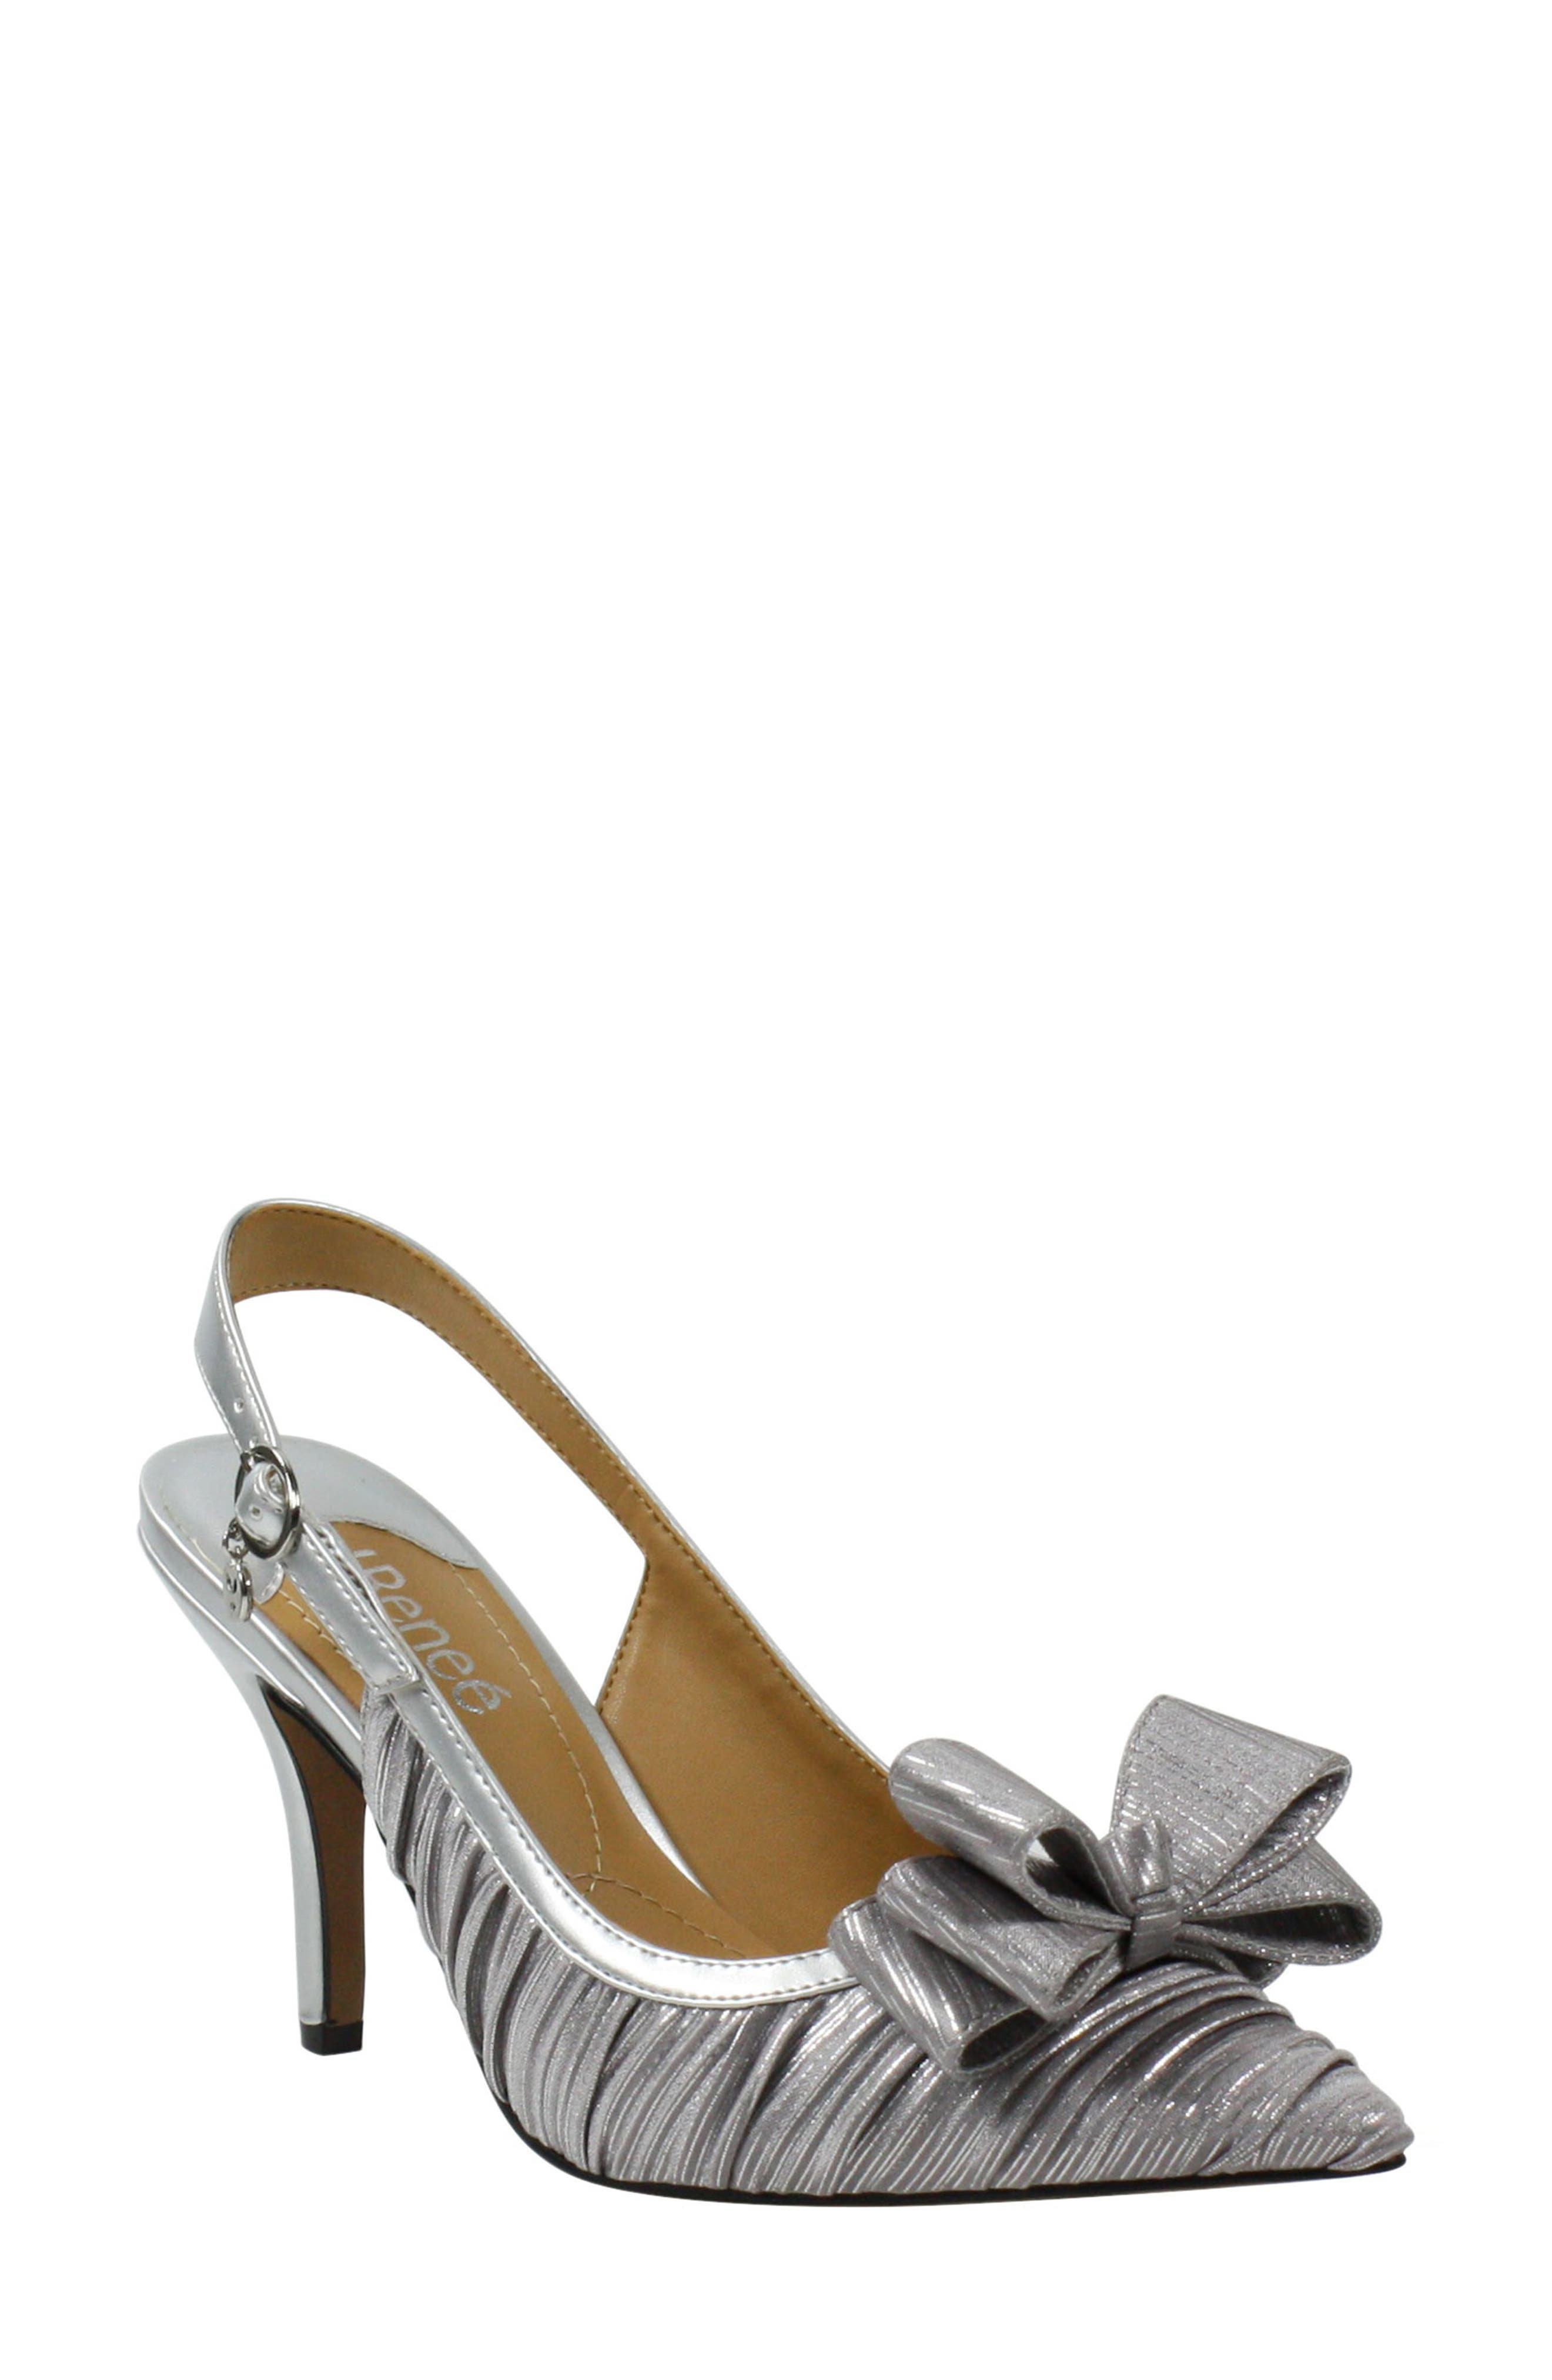 An exuberant bow adds a playfully chic flourish to the pointy toe of a shimmery pump with delicate netted detailing and a charm at the slingback strap. Style Name:J. Renee Charise Bow Pointed Toe Slingback Pump (Women). Style Number: 5892988. Available in stores.